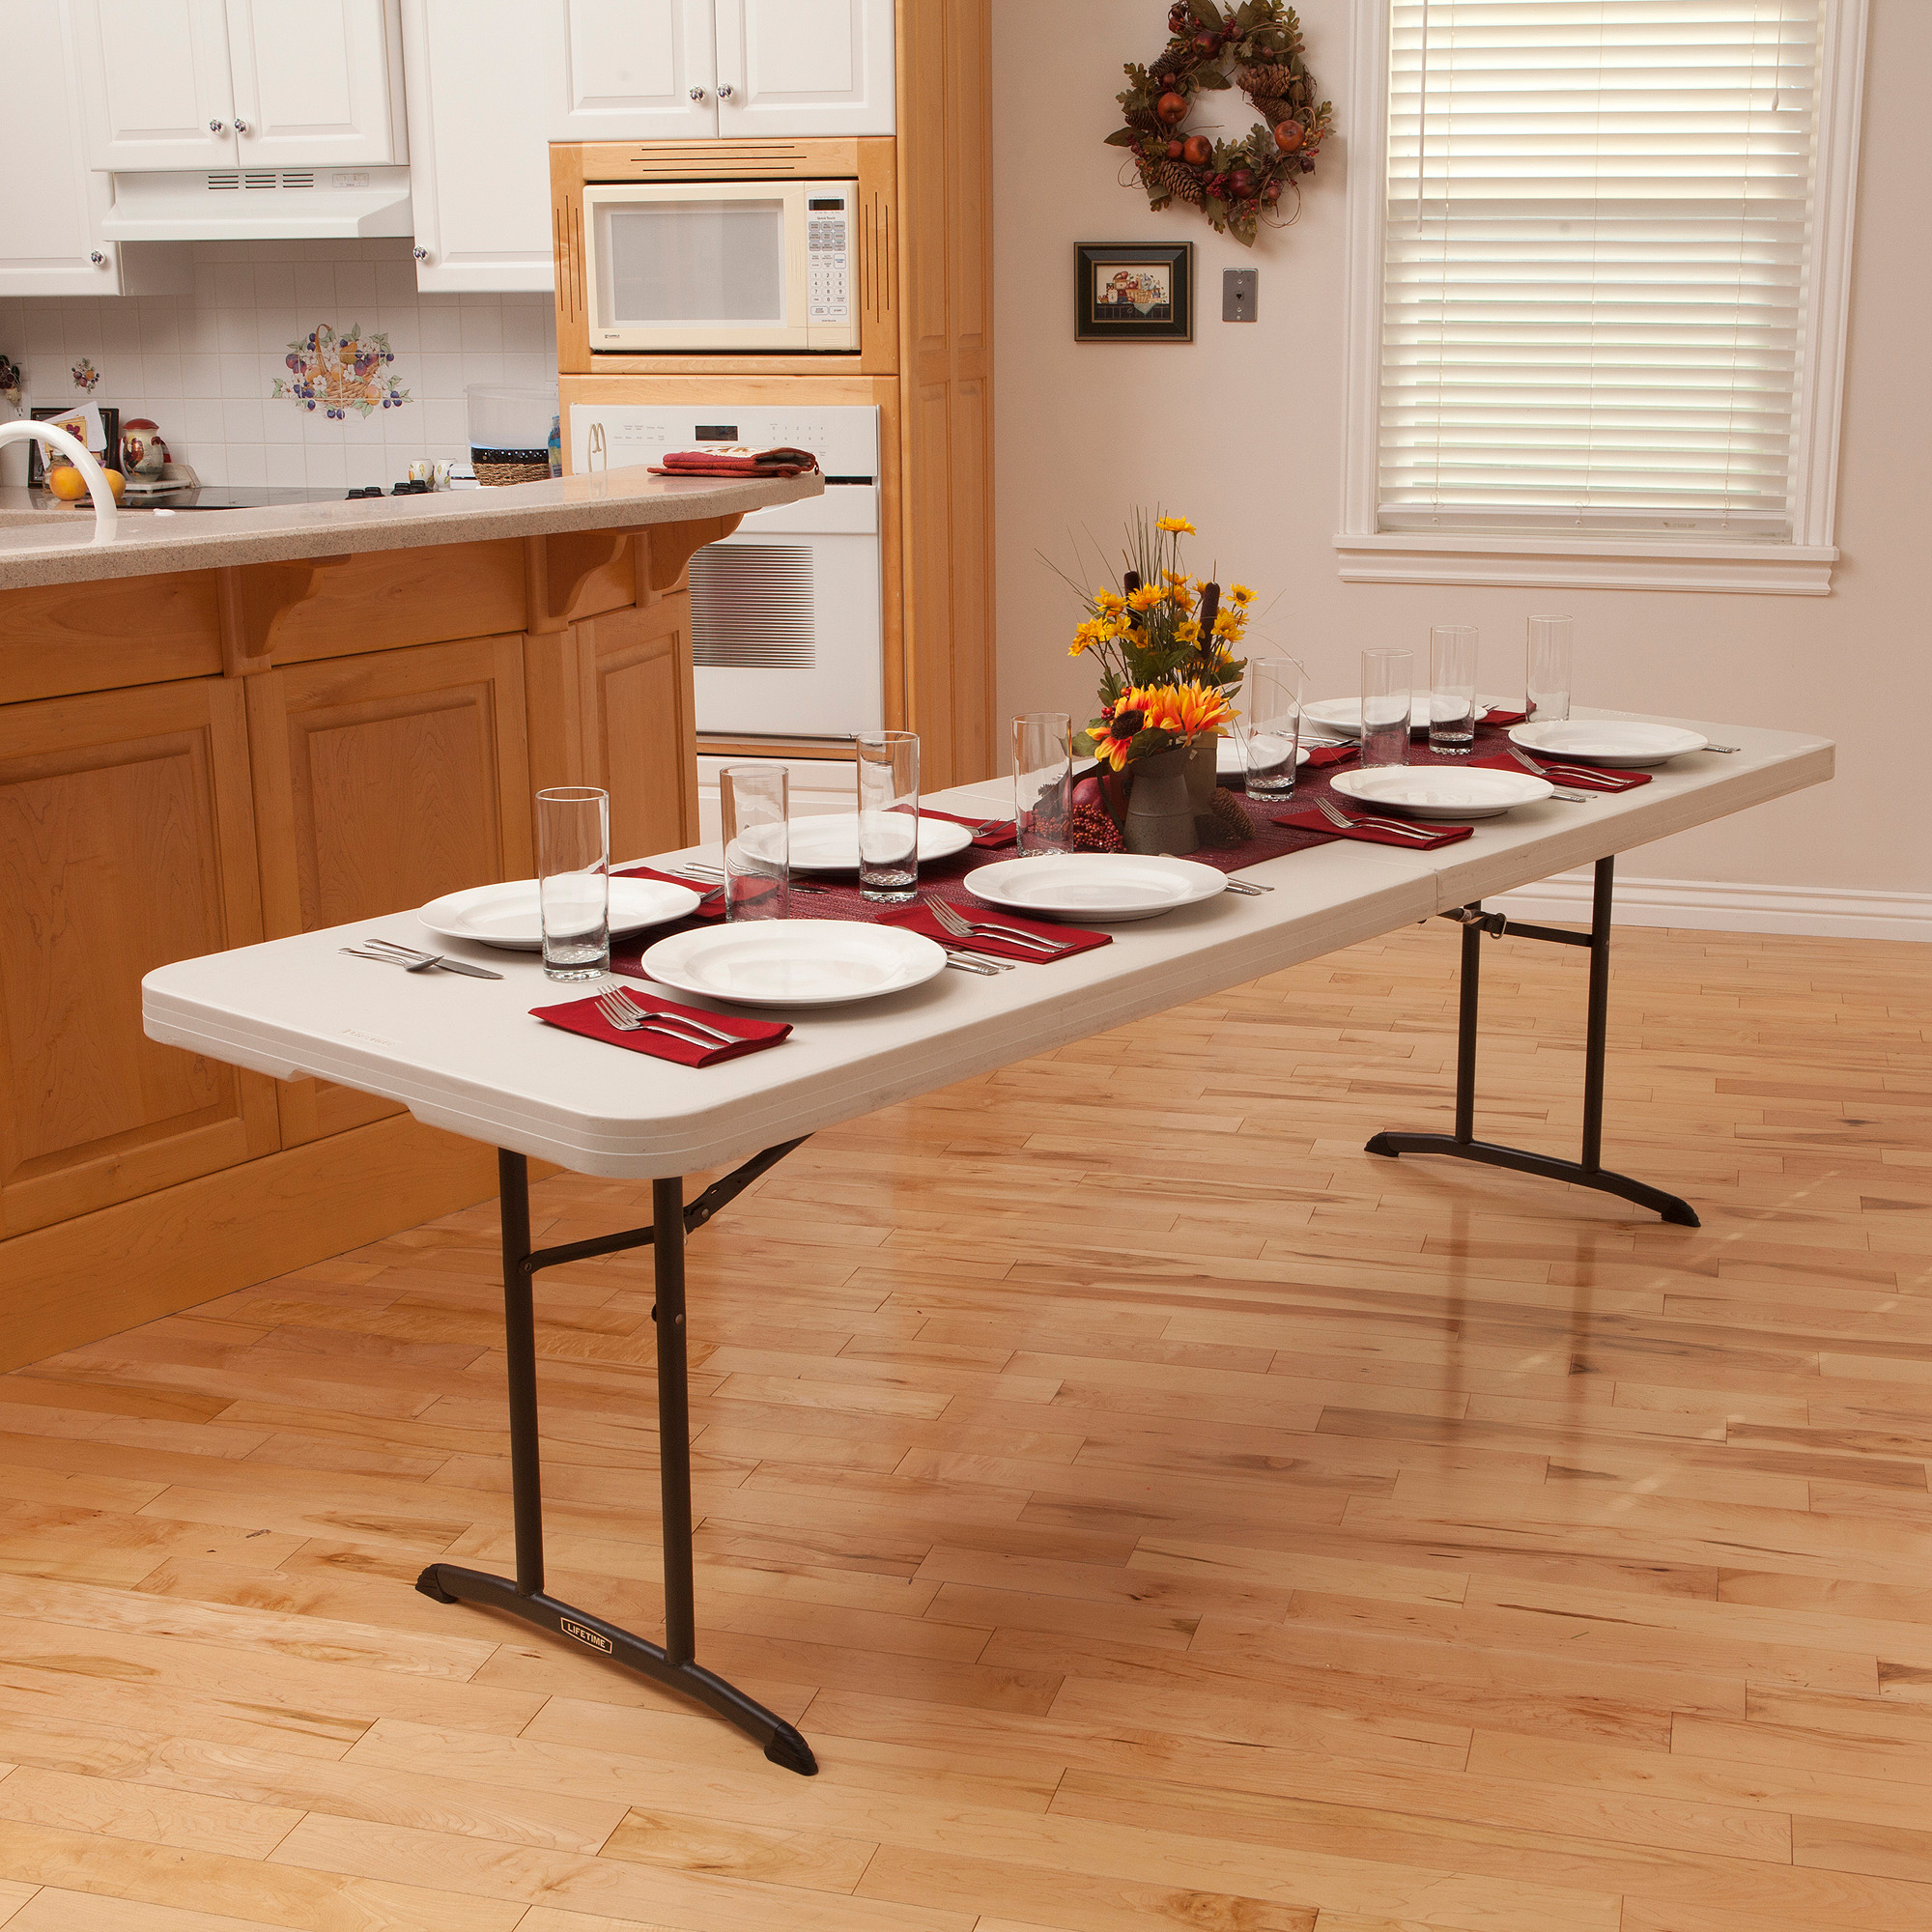 Lifetime 8' Fold-In-Half Table, Almond